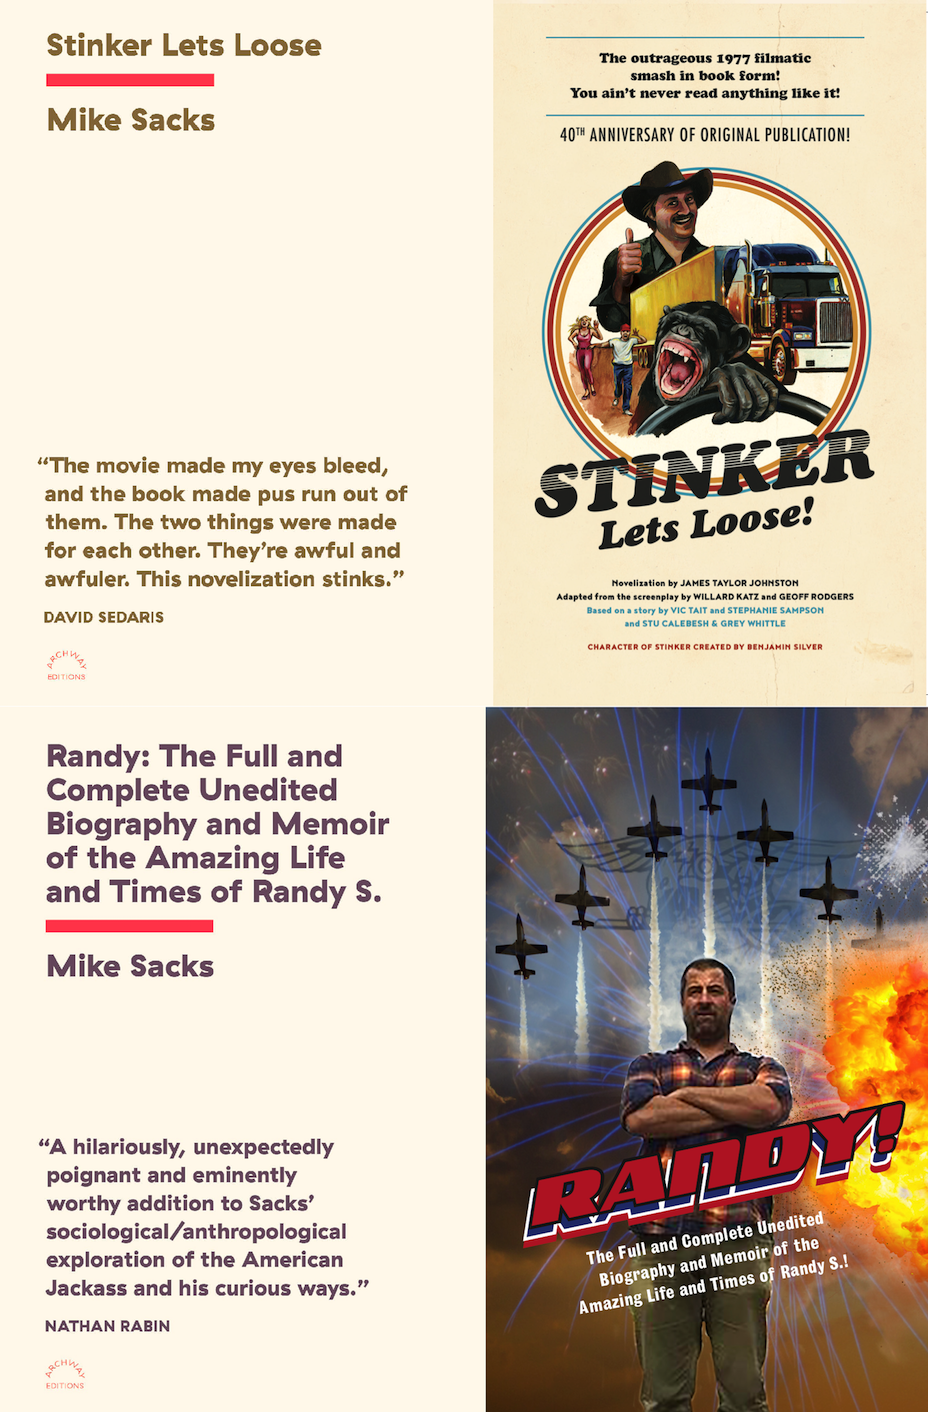 ARCHWAY EDITIONS PRESENTS the book launch for Stinker Lets Loose and Randy! by Mike Sacks in conversation with Jason Zinoman